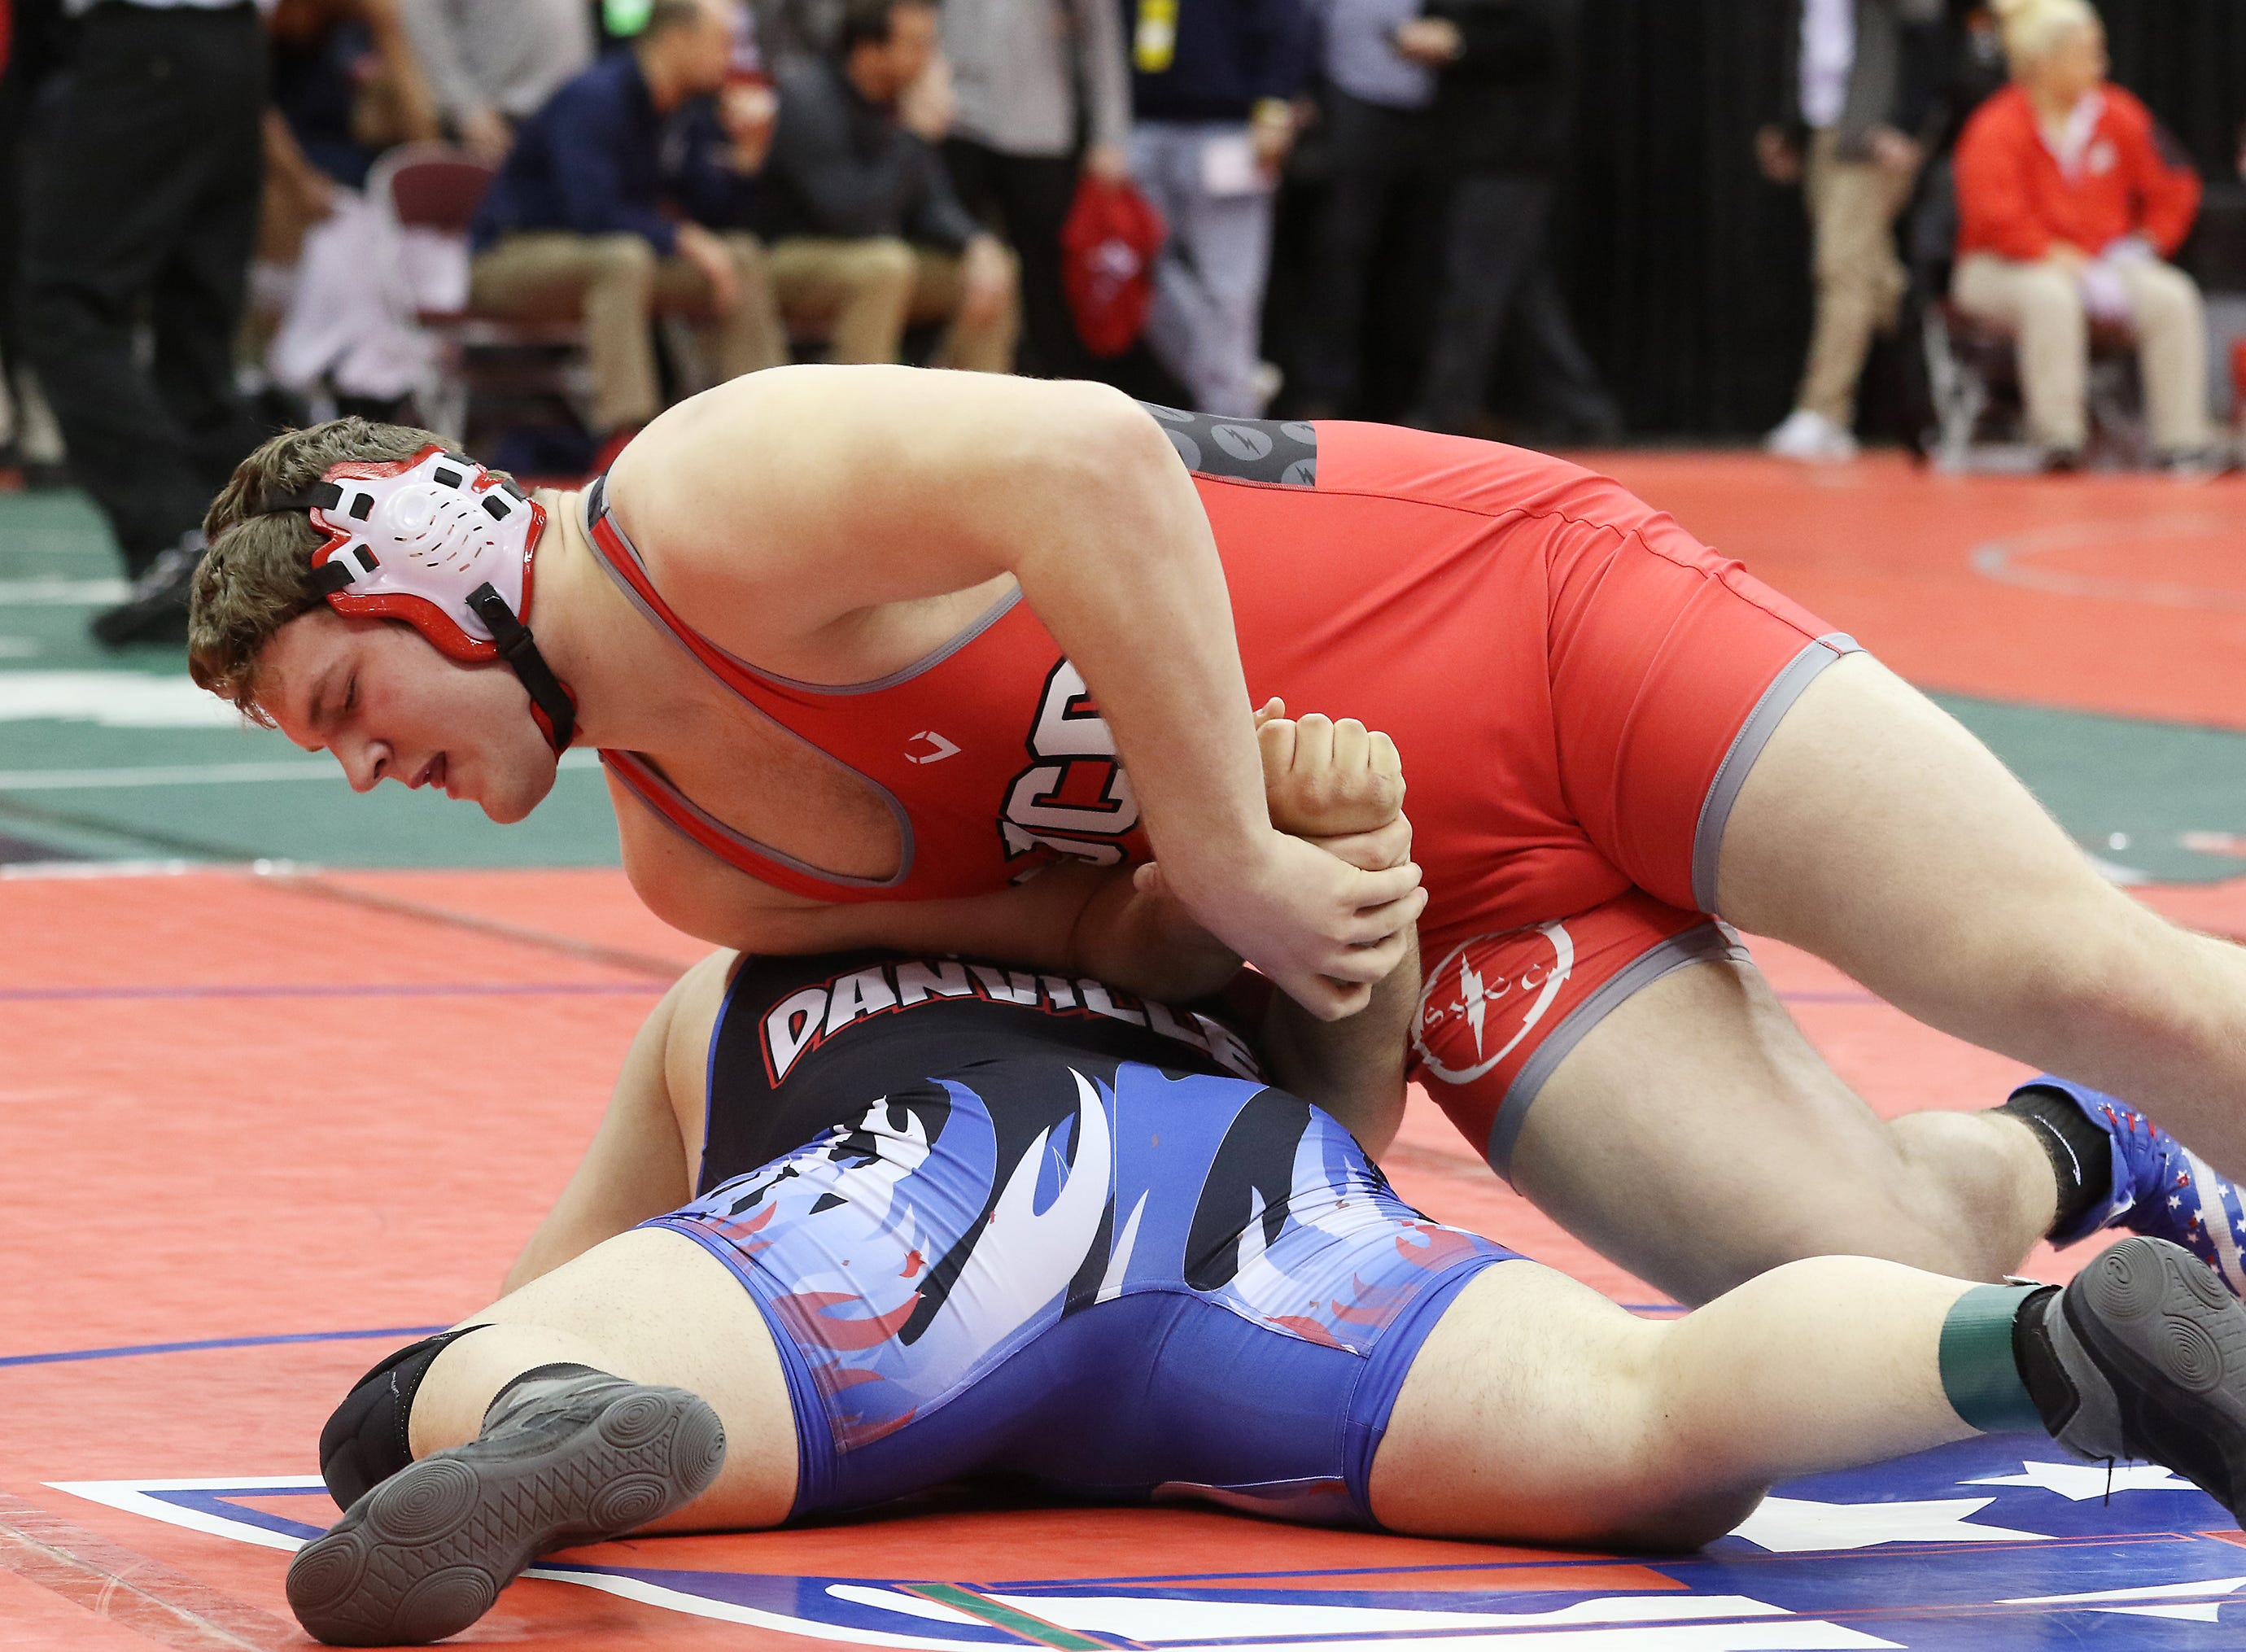 Fremont St. Joseph's Noah Price wrestles Danville's Dylan Wilson in the 285 pound weight class at the Division III state wrestling tournament on Friday.